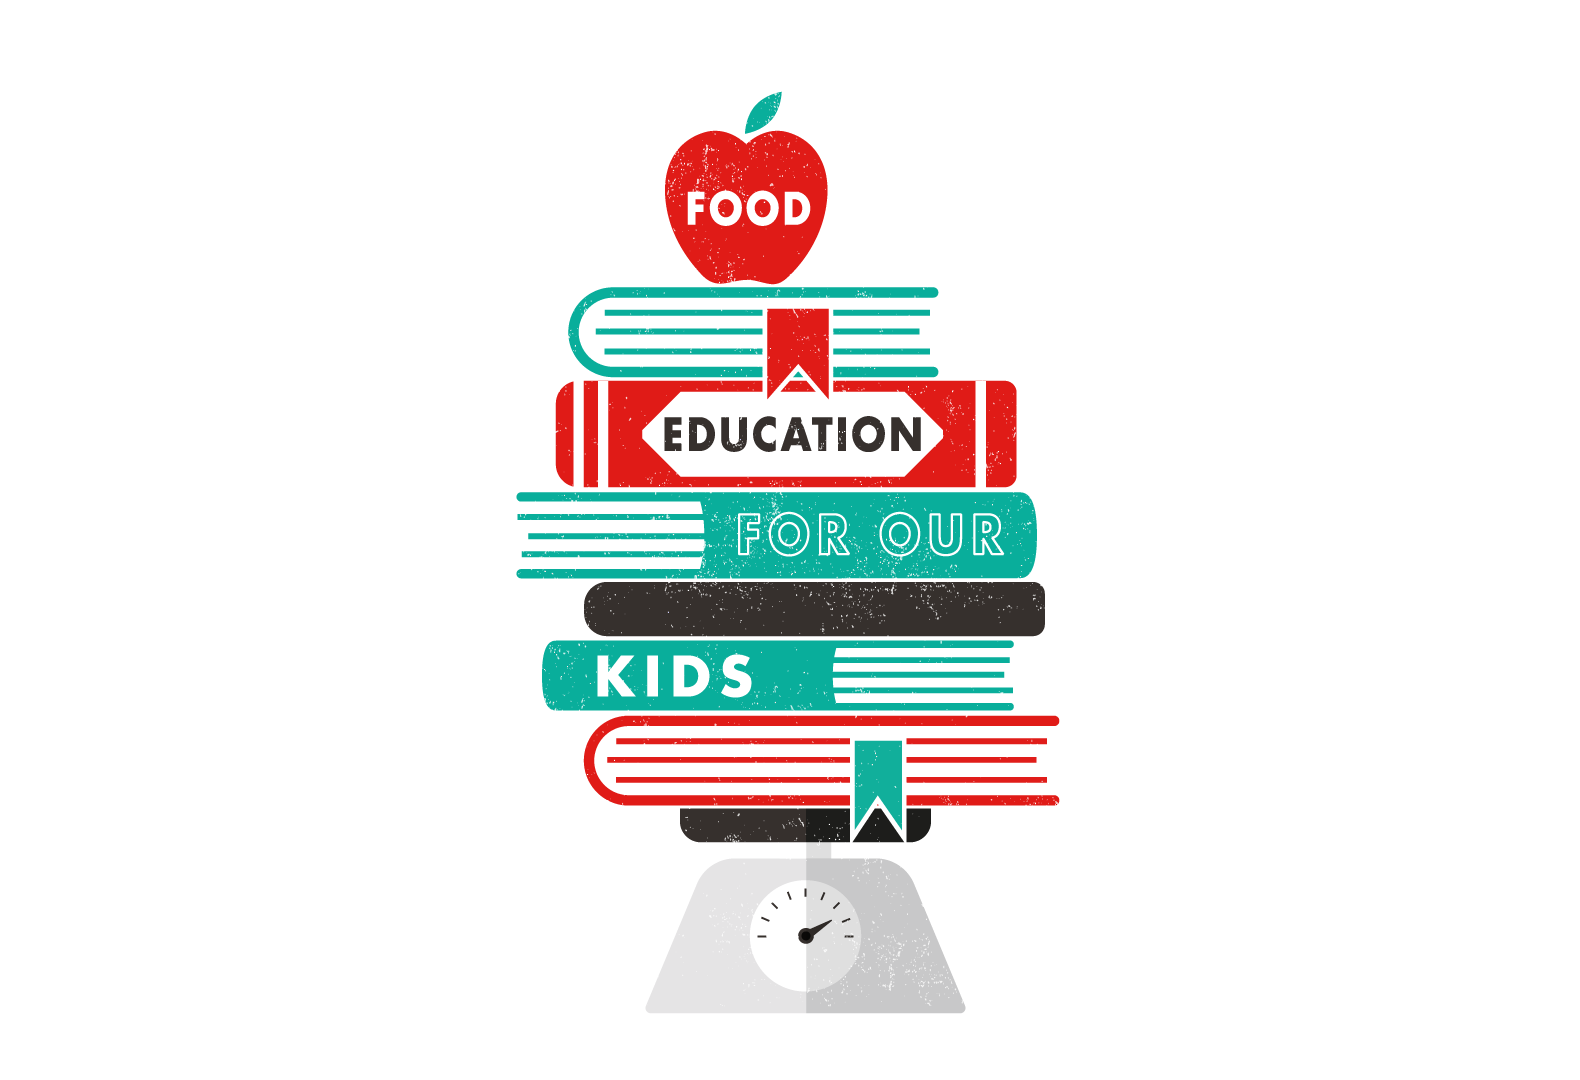 """Food education for our kids,"" illustration for the Jamie liver Food Revolution campaign."